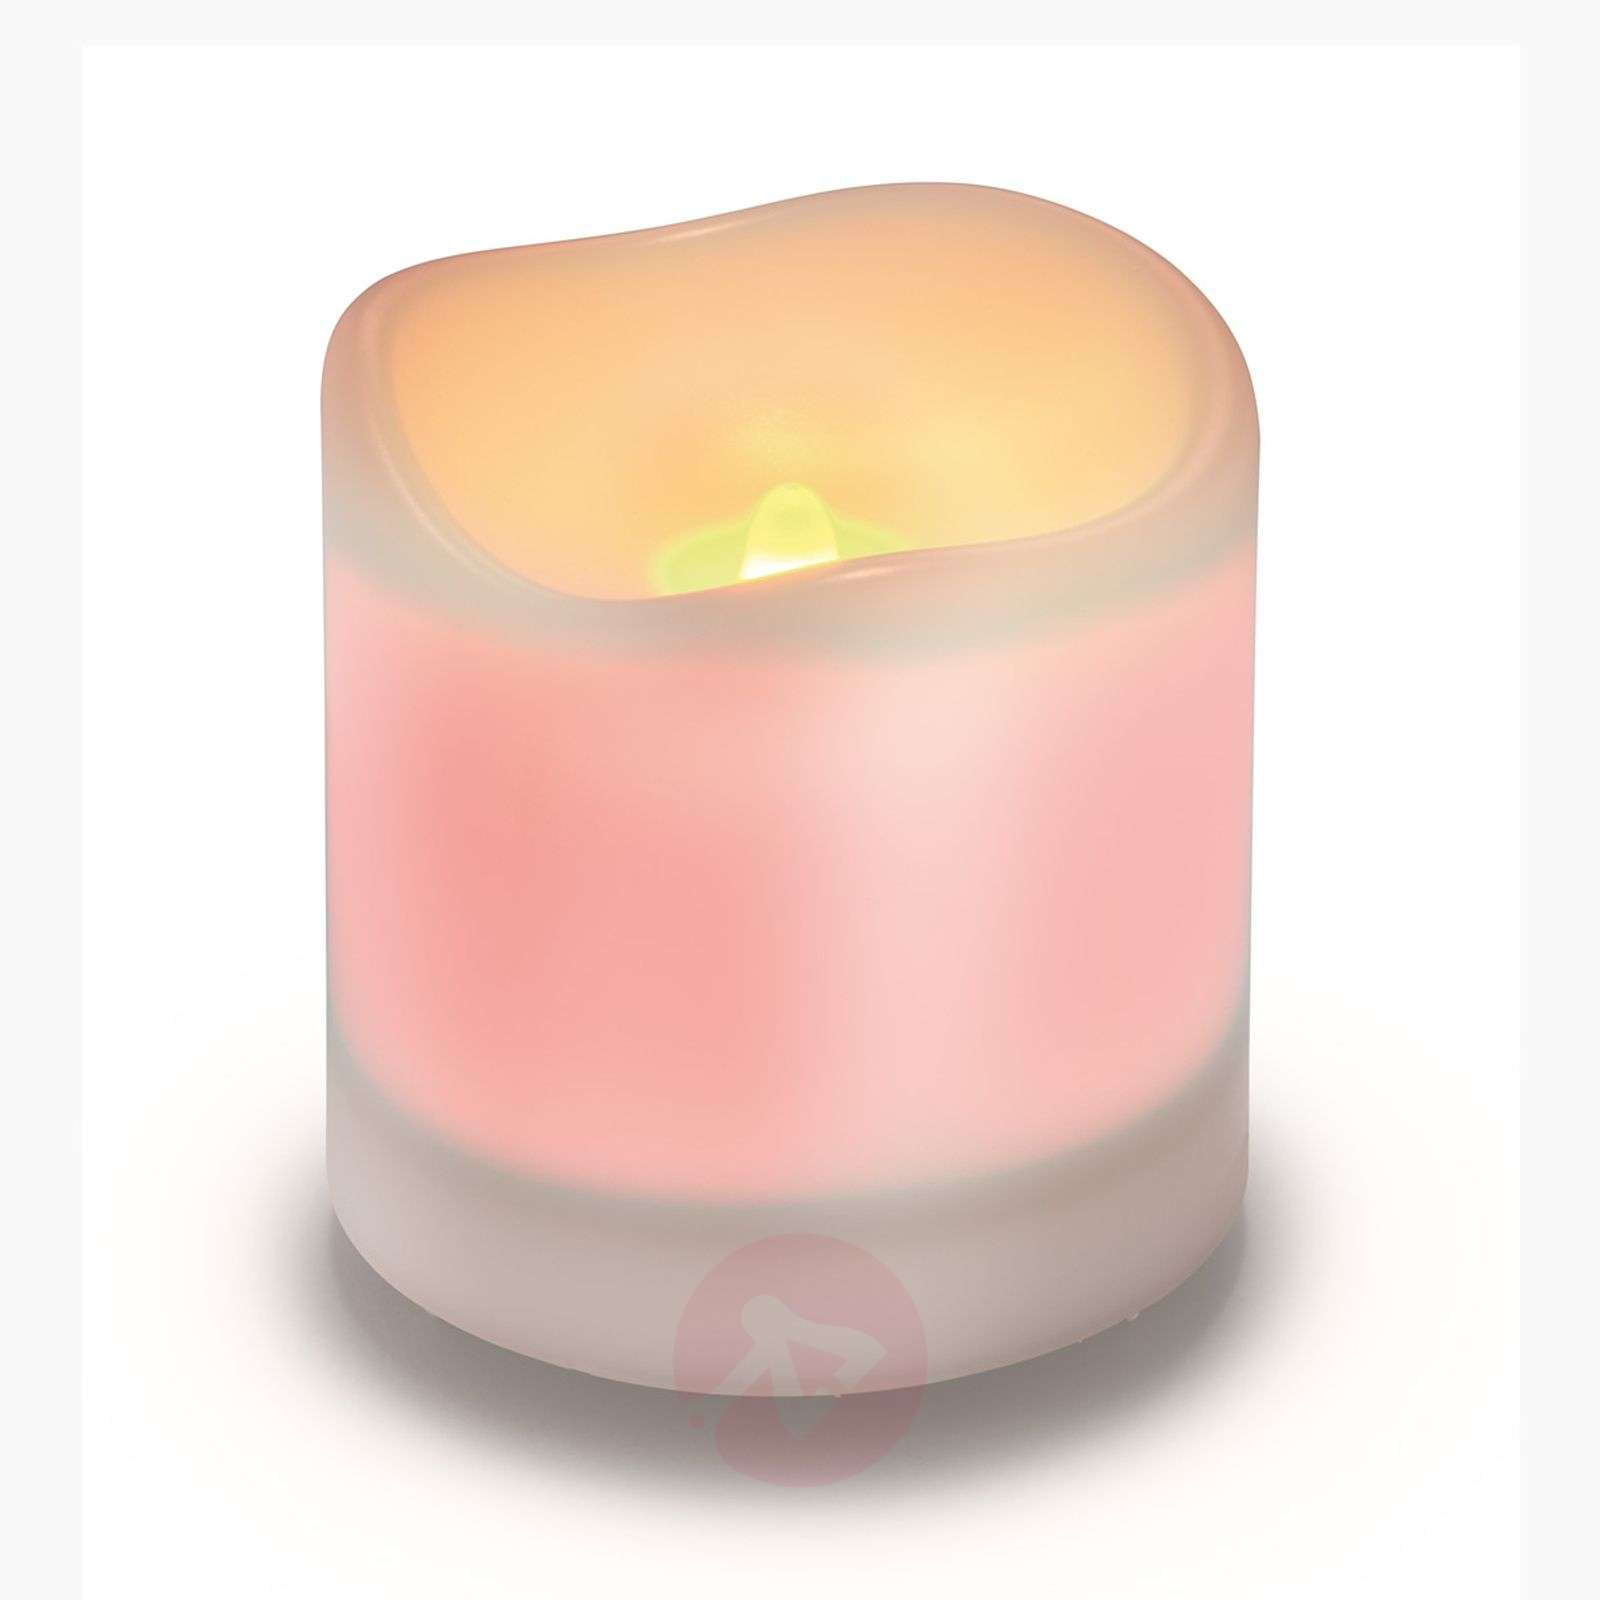 Candela solare a LED bianca Candle Light-3012228-01